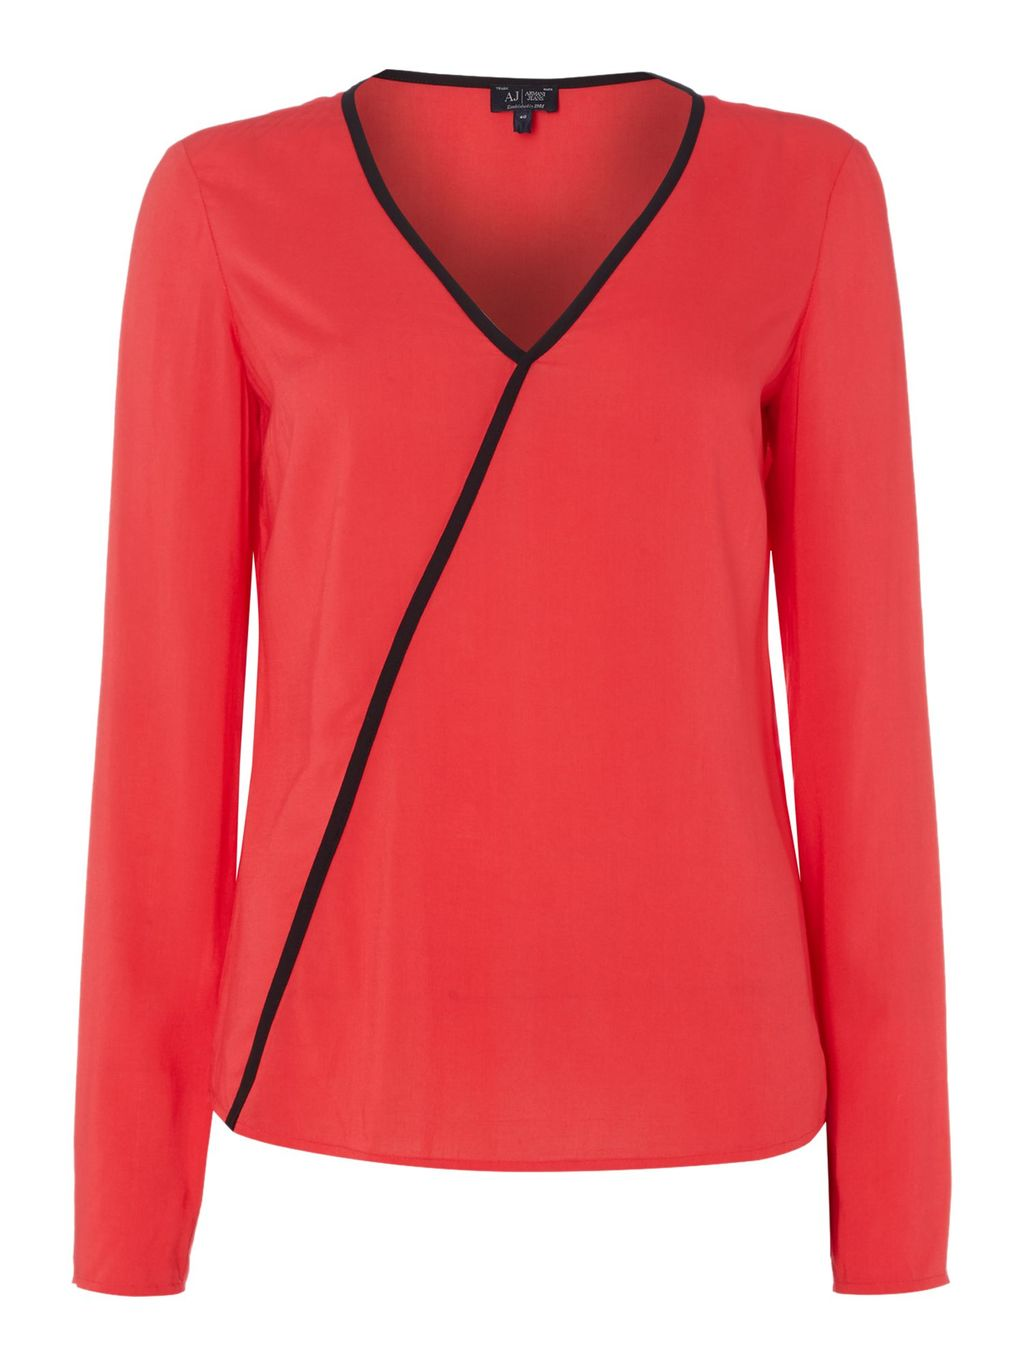 Long Sleeve V Neck Top With Contrast Piping, Red - neckline: v-neck; pattern: plain; predominant colour: true red; occasions: casual; length: standard; style: top; fibres: viscose/rayon - 100%; fit: body skimming; sleeve length: long sleeve; sleeve style: standard; pattern type: fabric; texture group: other - light to midweight; season: s/s 2016